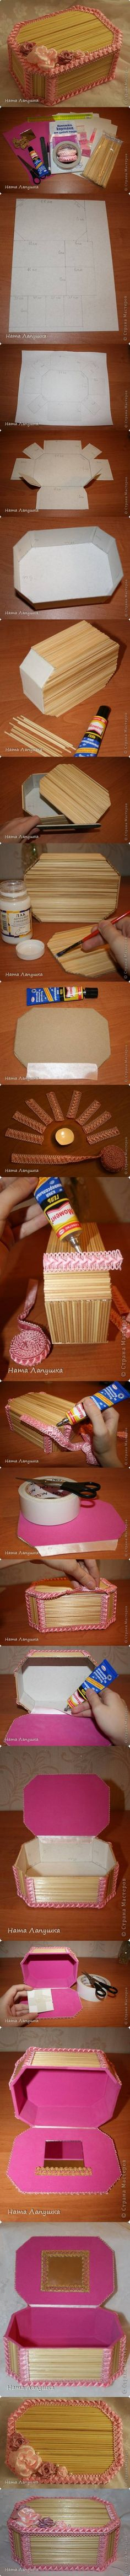 DIY Pink Mood Jewelry Box